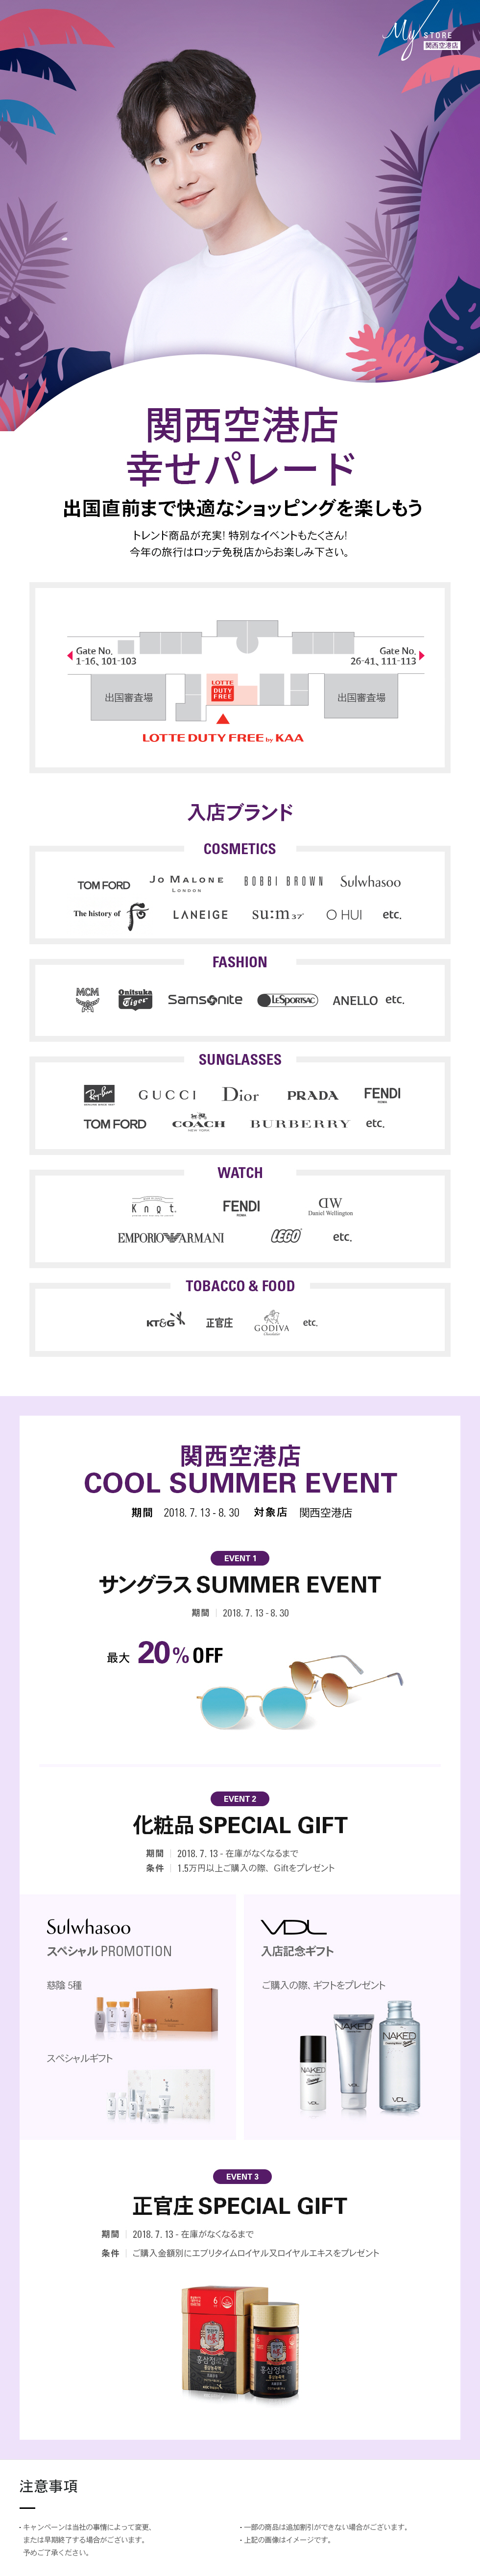 関西空港店 COOL SUMMER EVENT